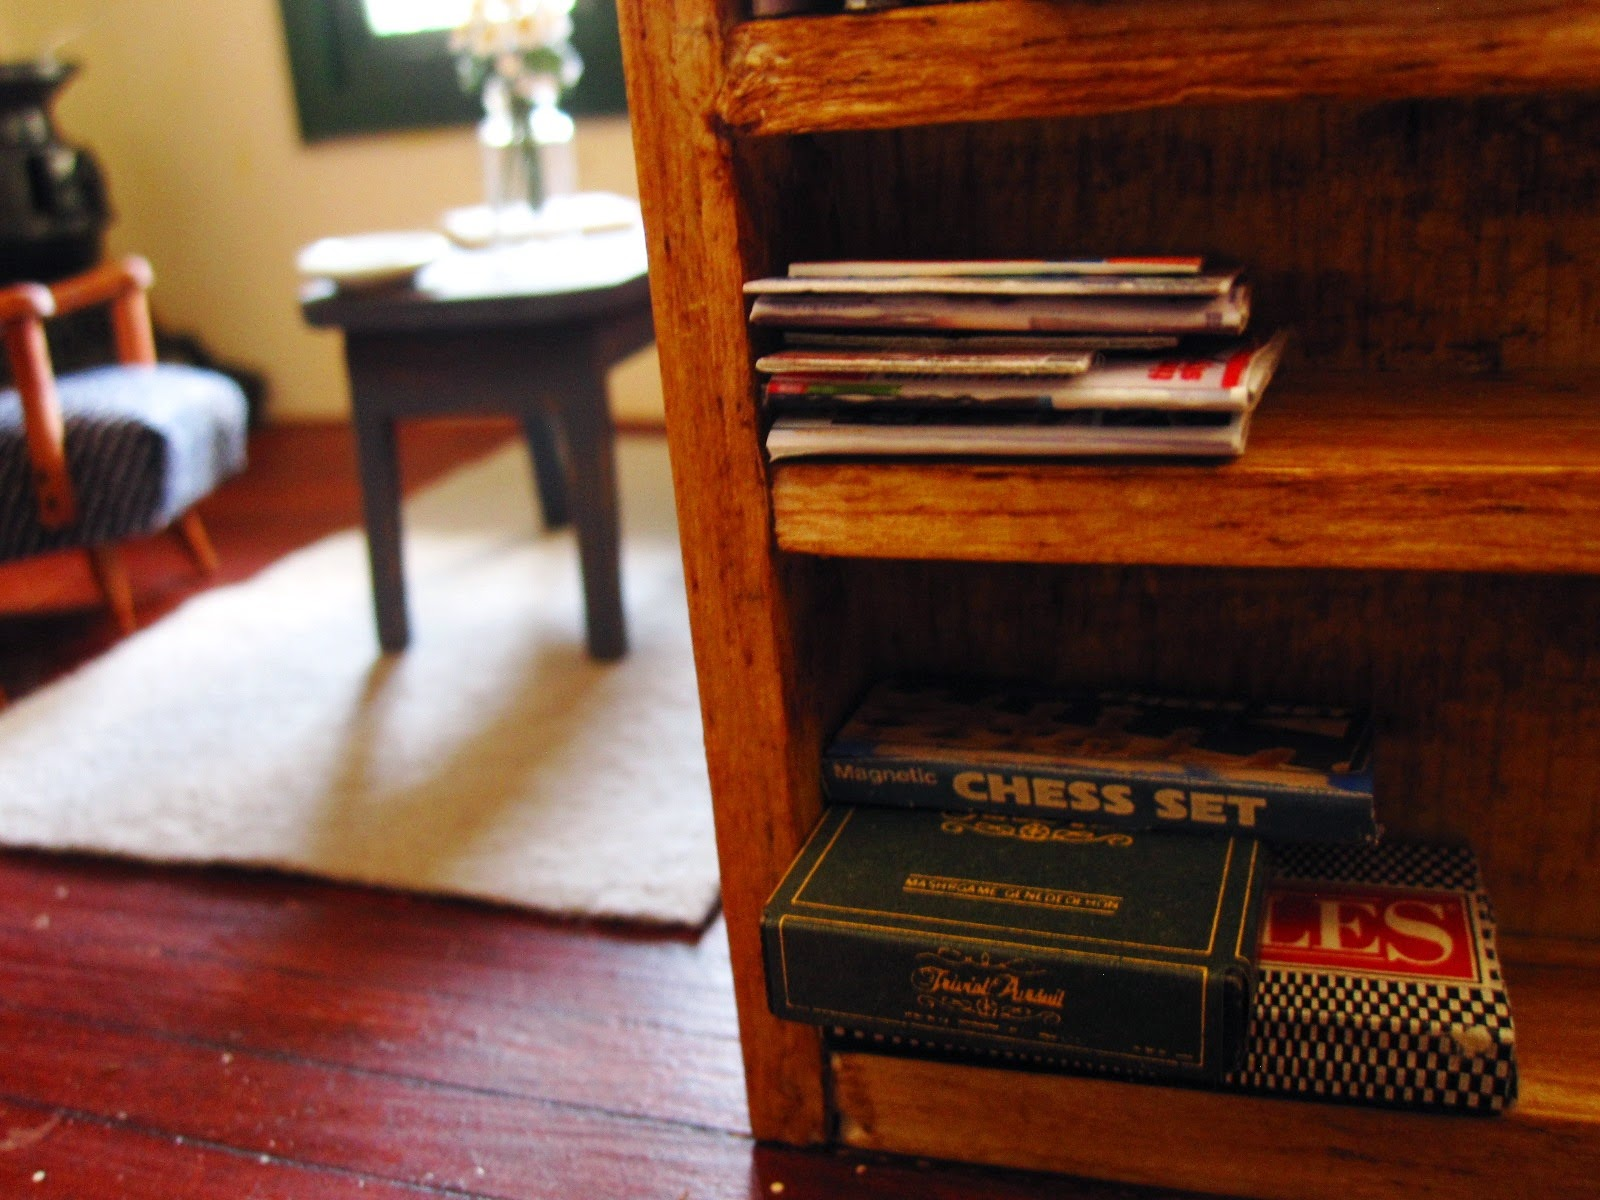 Dolls house miniatrie bookcase with a stack of game boxes on the bottom shelf.